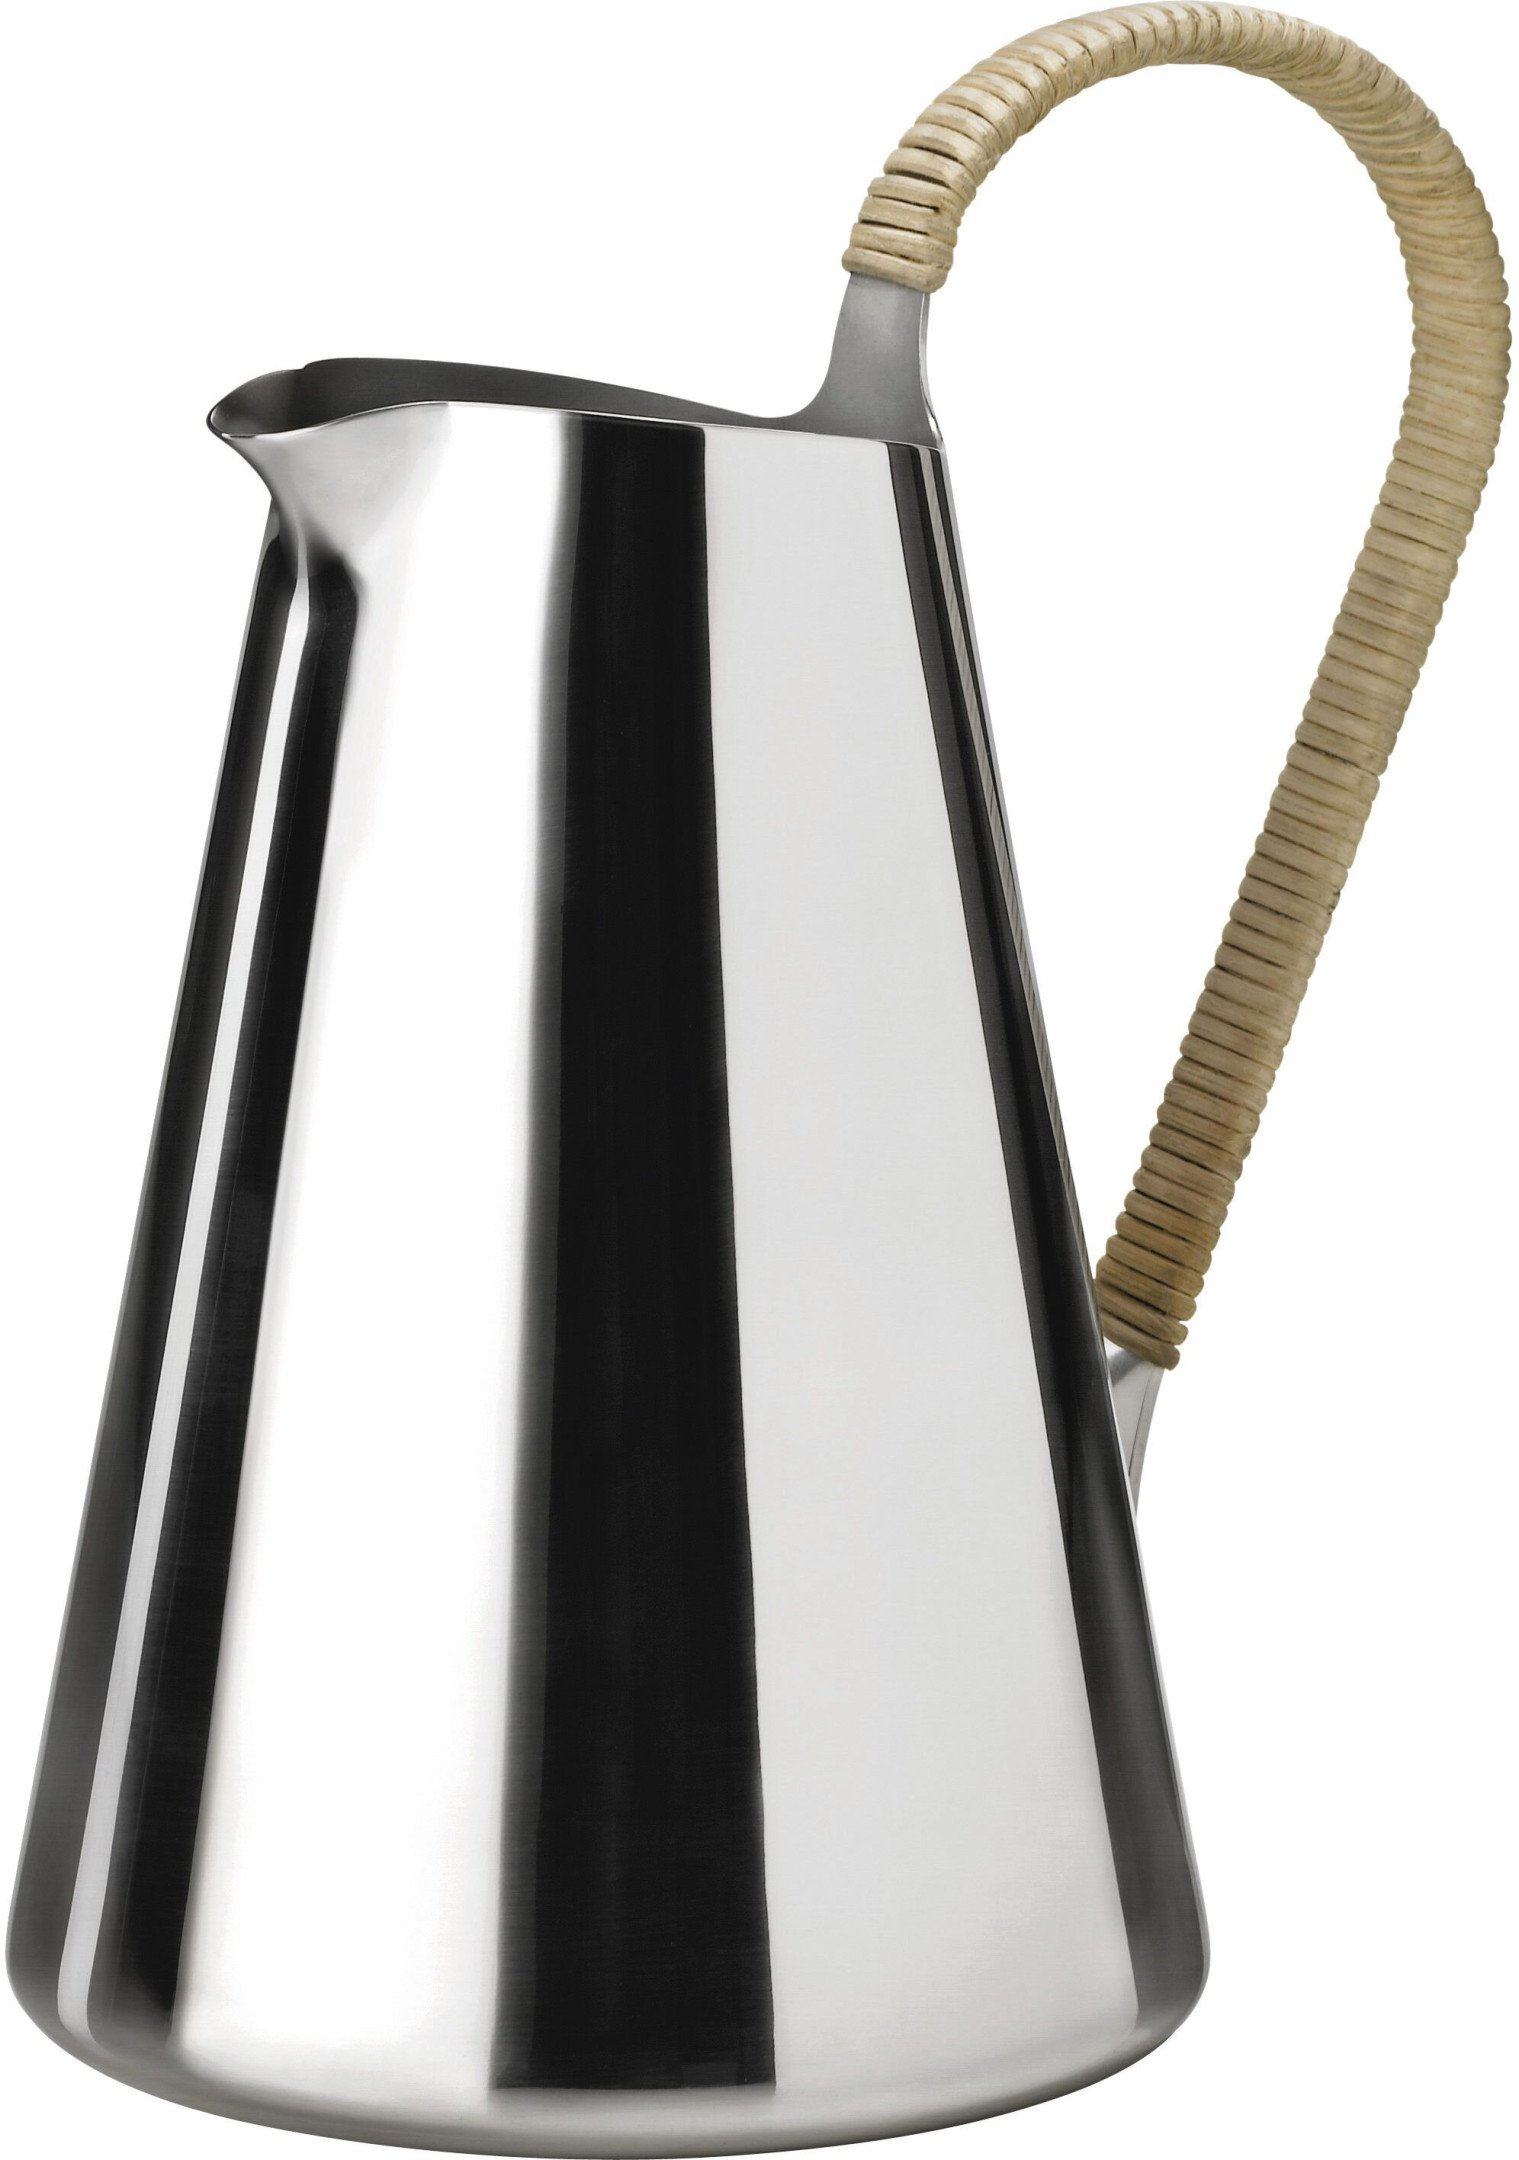 Freja Pitcher 2 L by K. Rath for Stelton